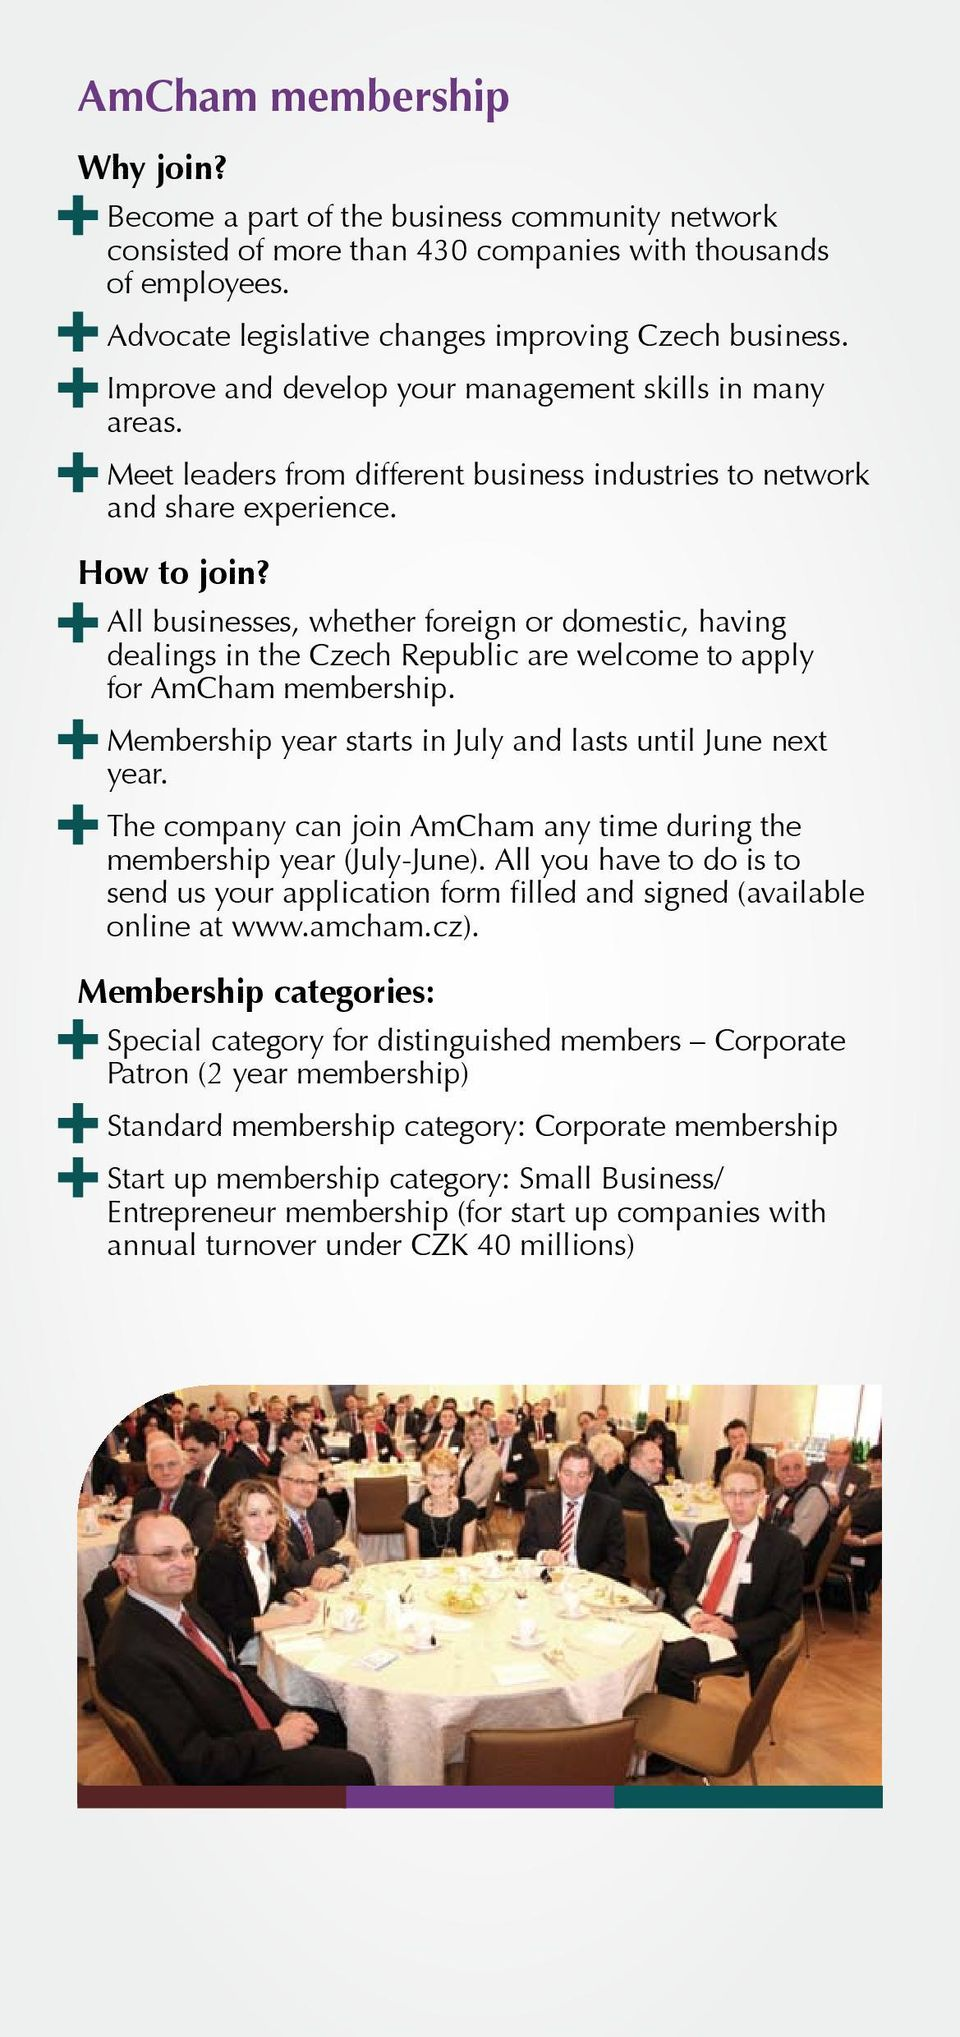 All businesses, whether foreign or domestic, having dealings in the Czech Republic are welcome to apply for AmCham membership. Membership year starts in July and lasts until June next year.